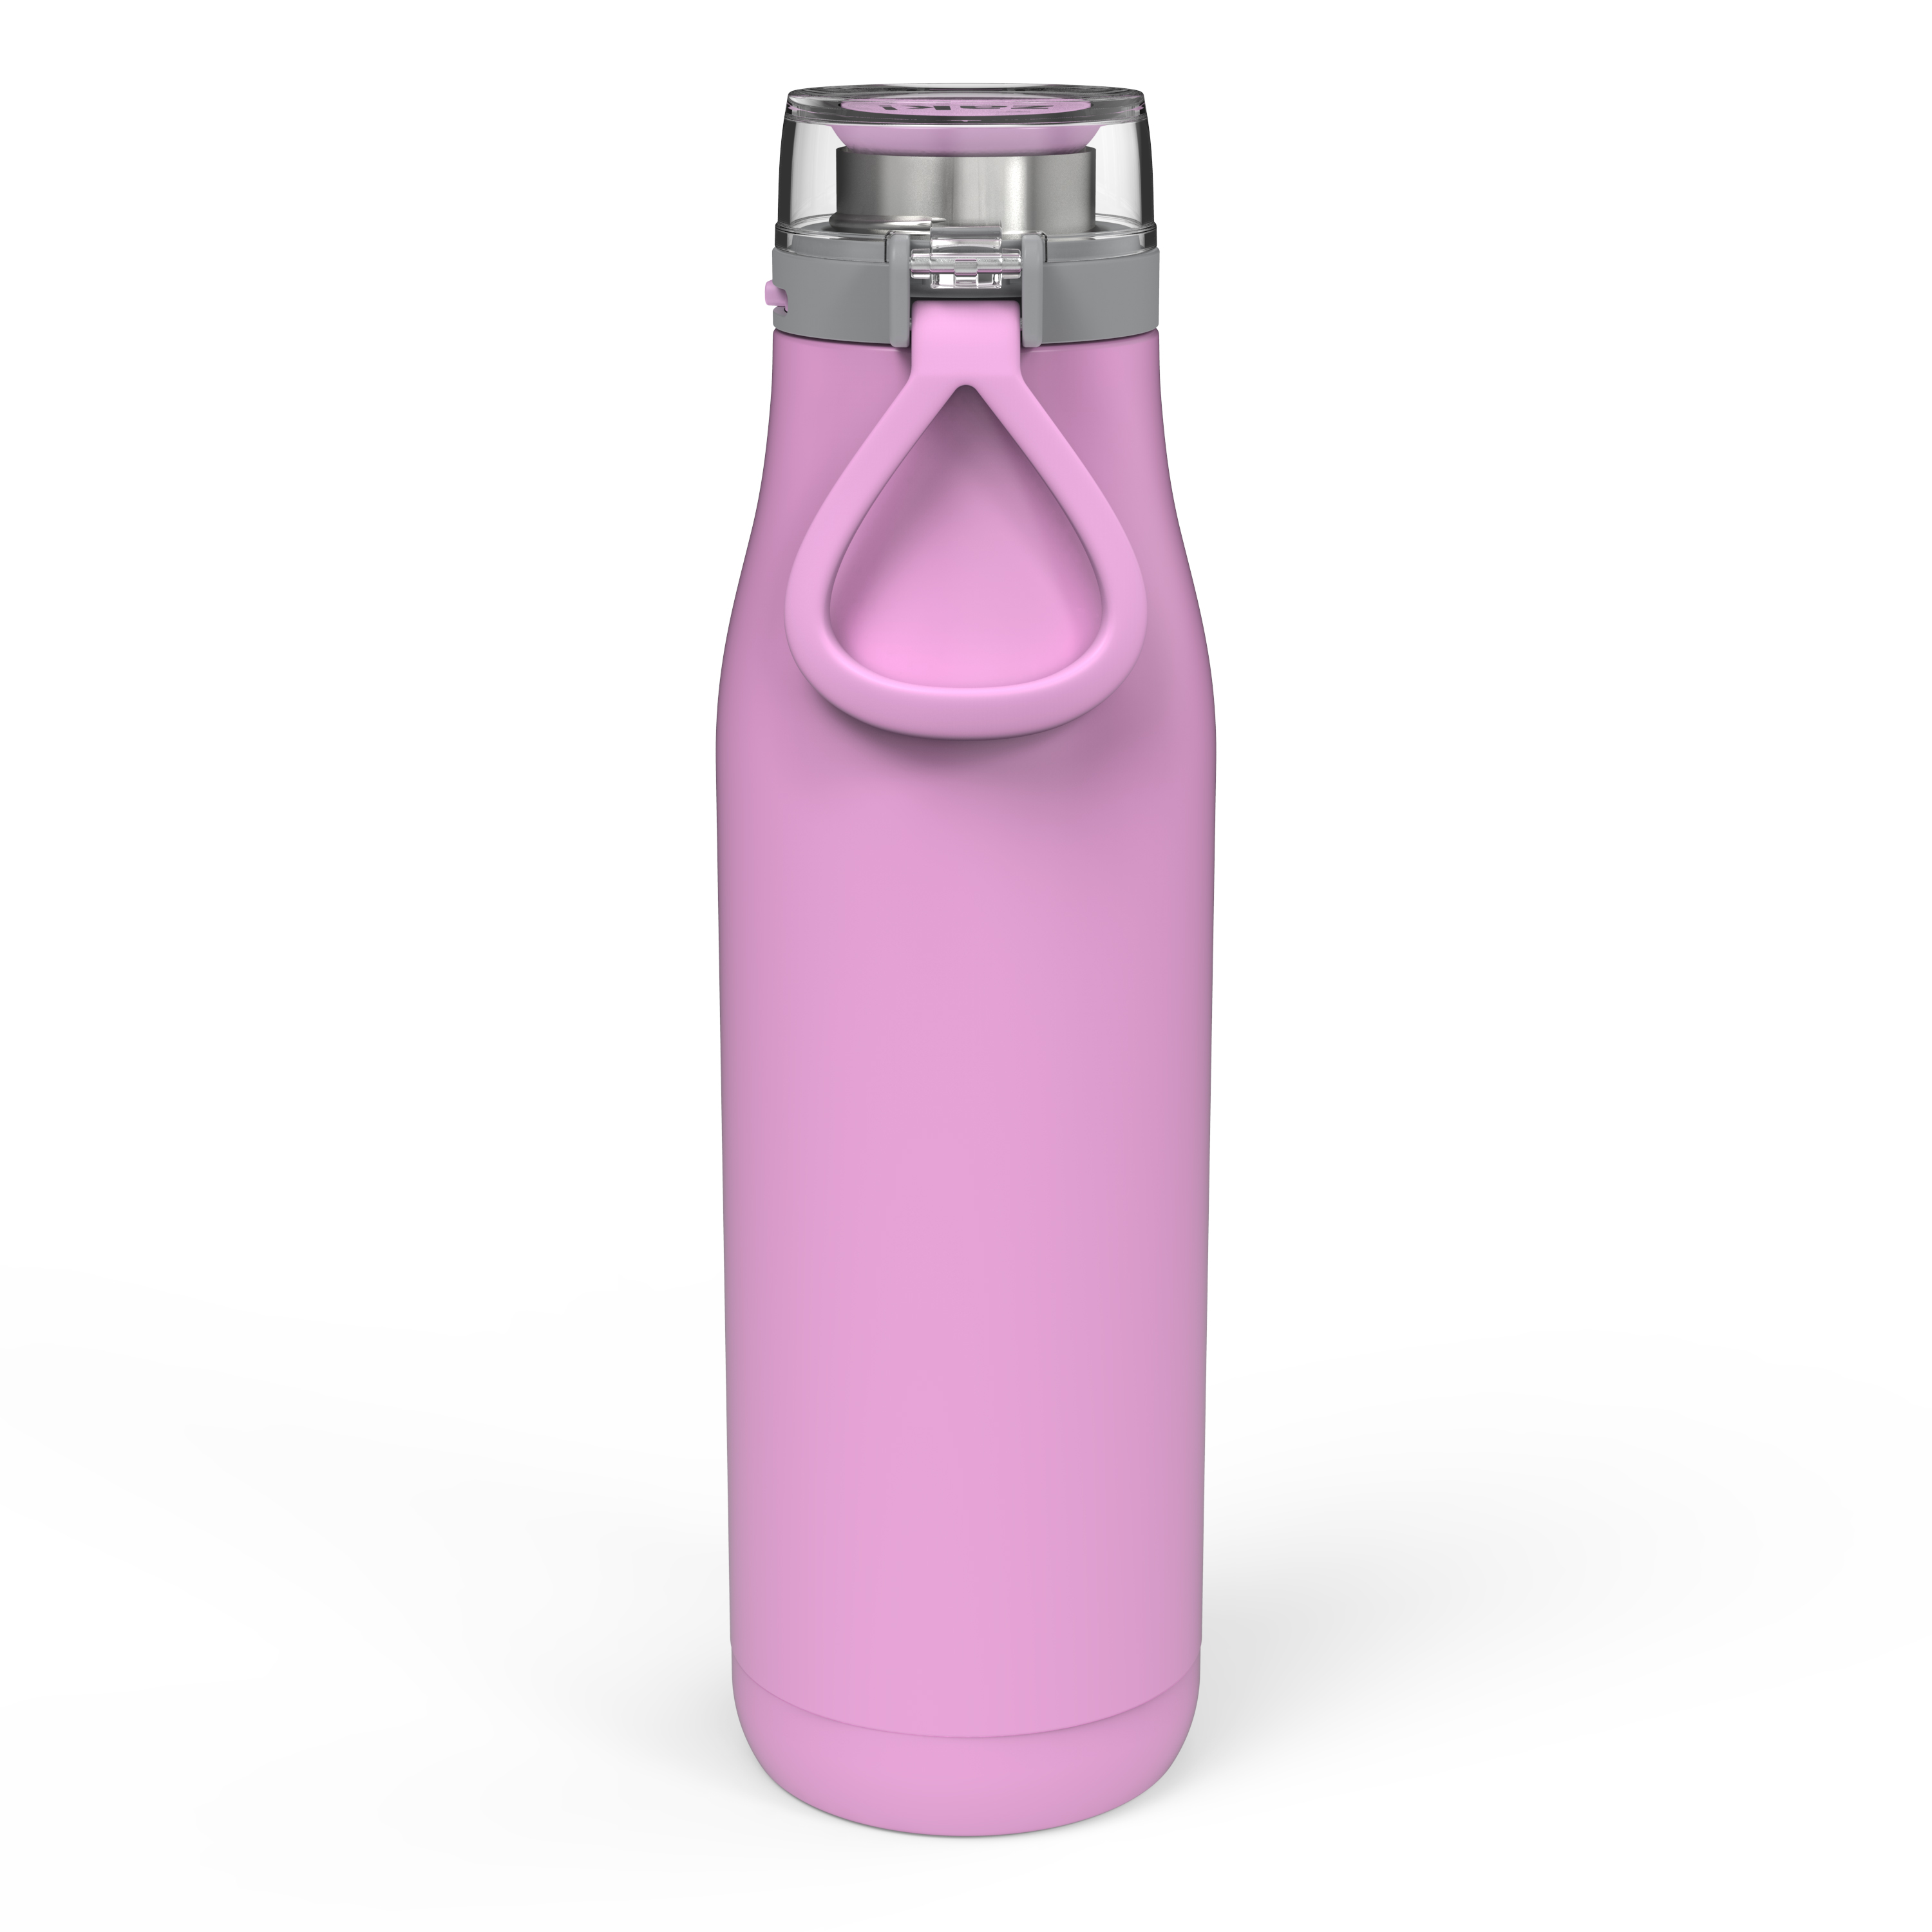 Kiona 29 ounce Vacuum Insulated Stainless Steel Tumbler, Lilac slideshow image 3